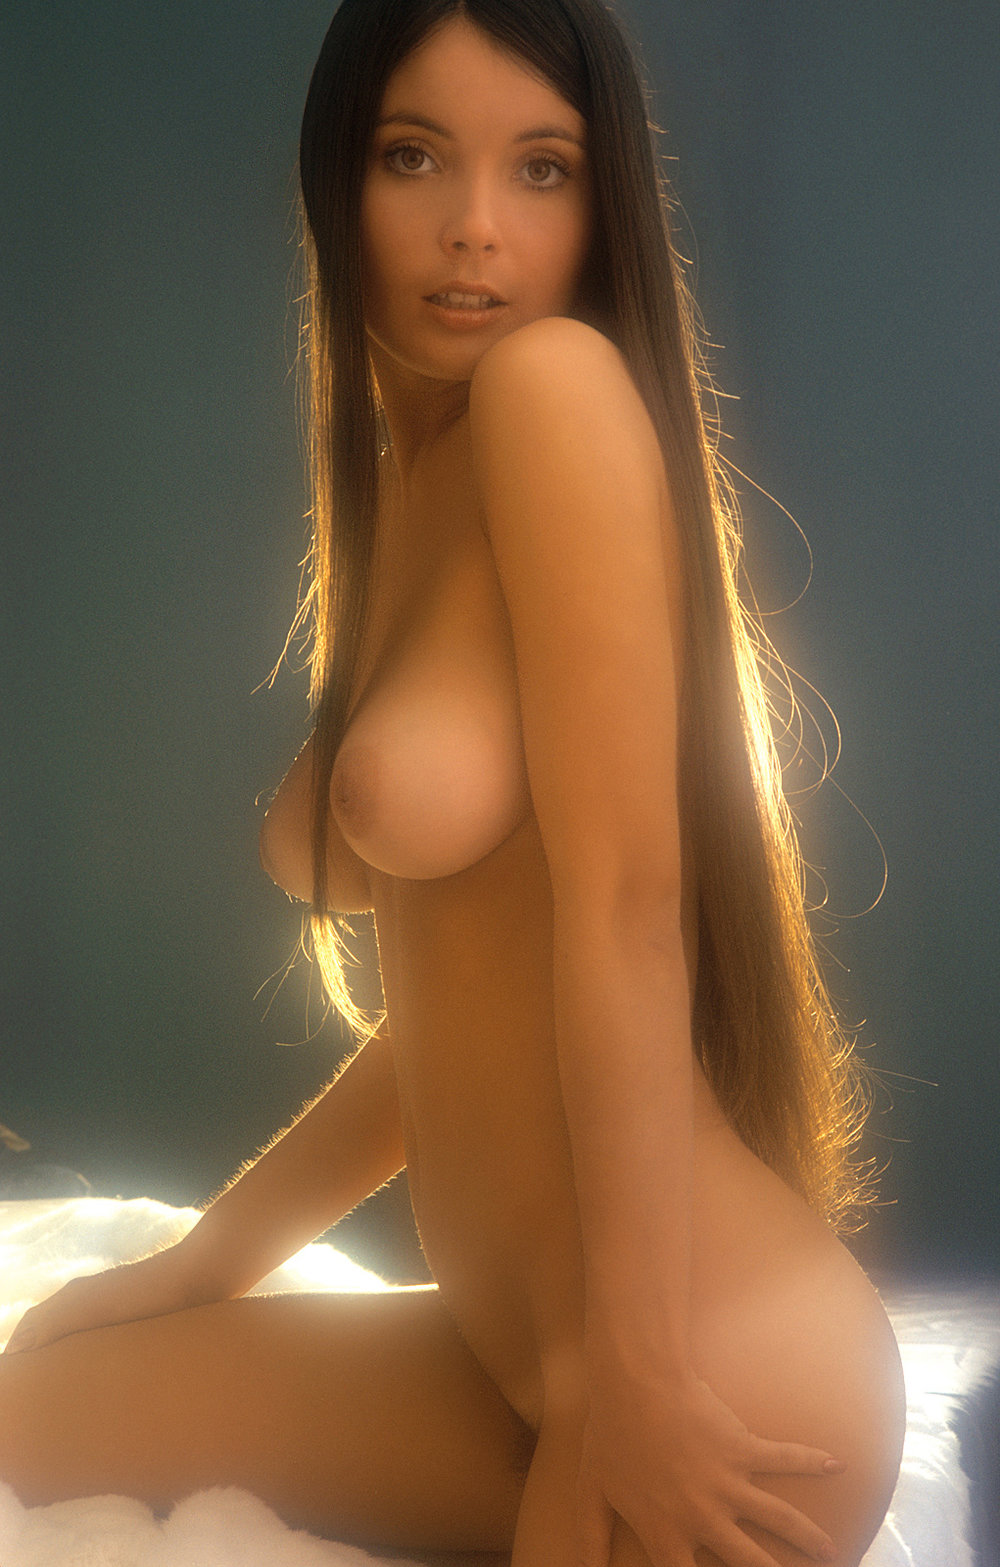 christine-maddox-playboy-magazine-1973